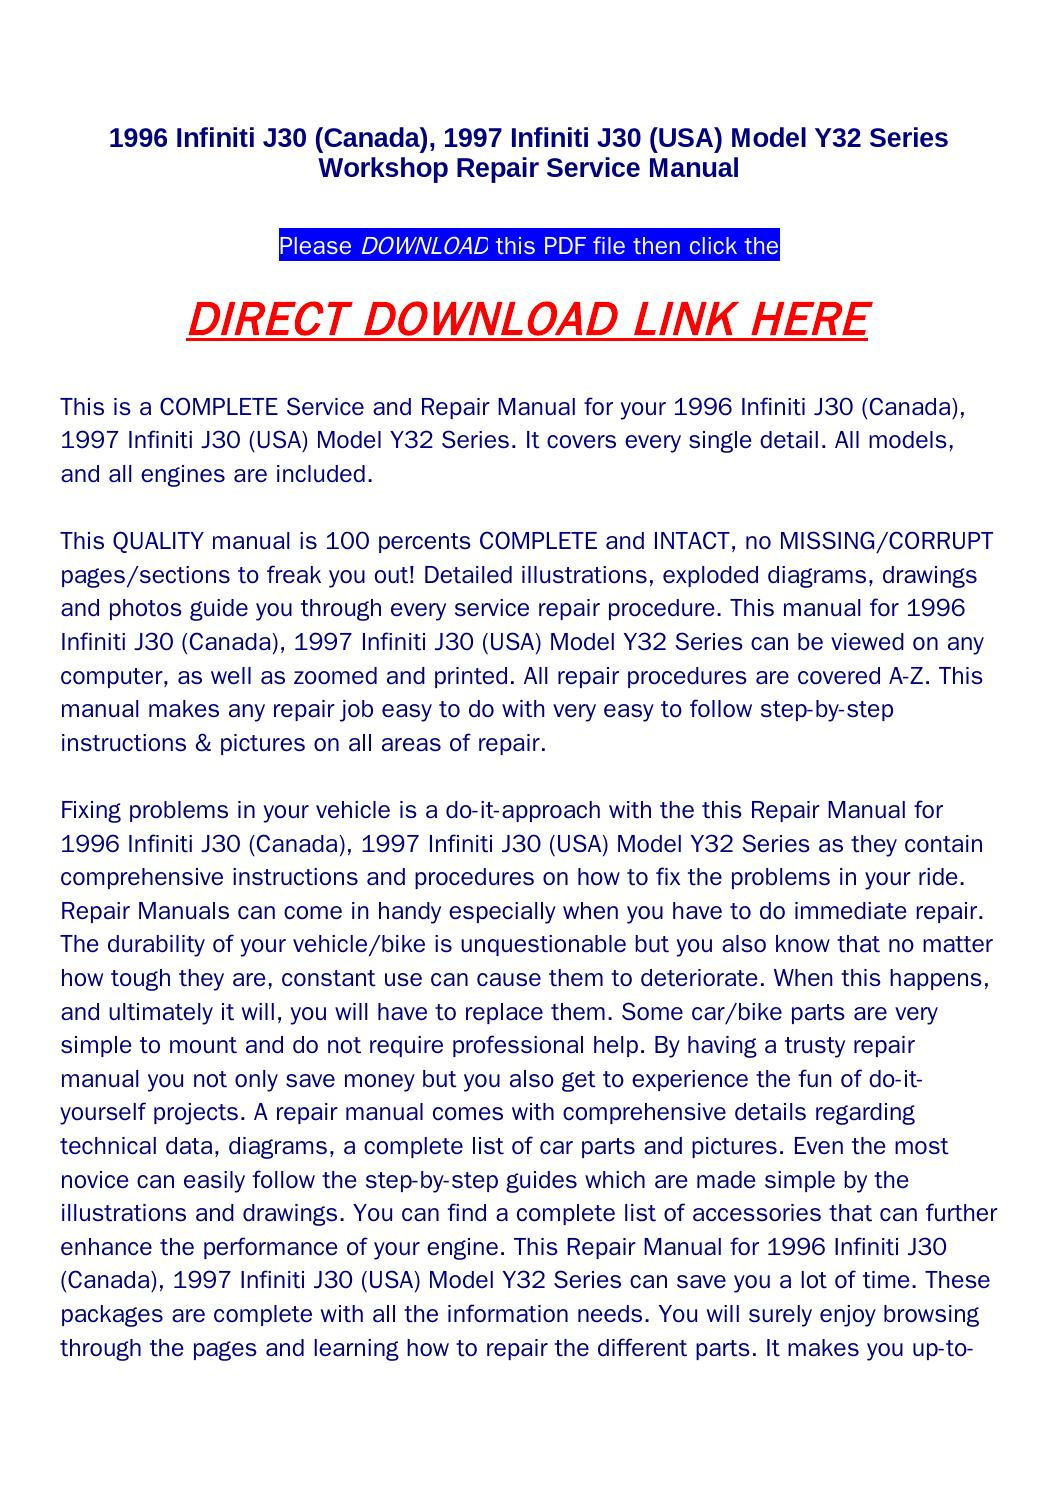 1996 infiniti j30 (canada), 1997 infiniti j30 (usa) model y32 series workshop  repair service manual by Newton Below - issuu